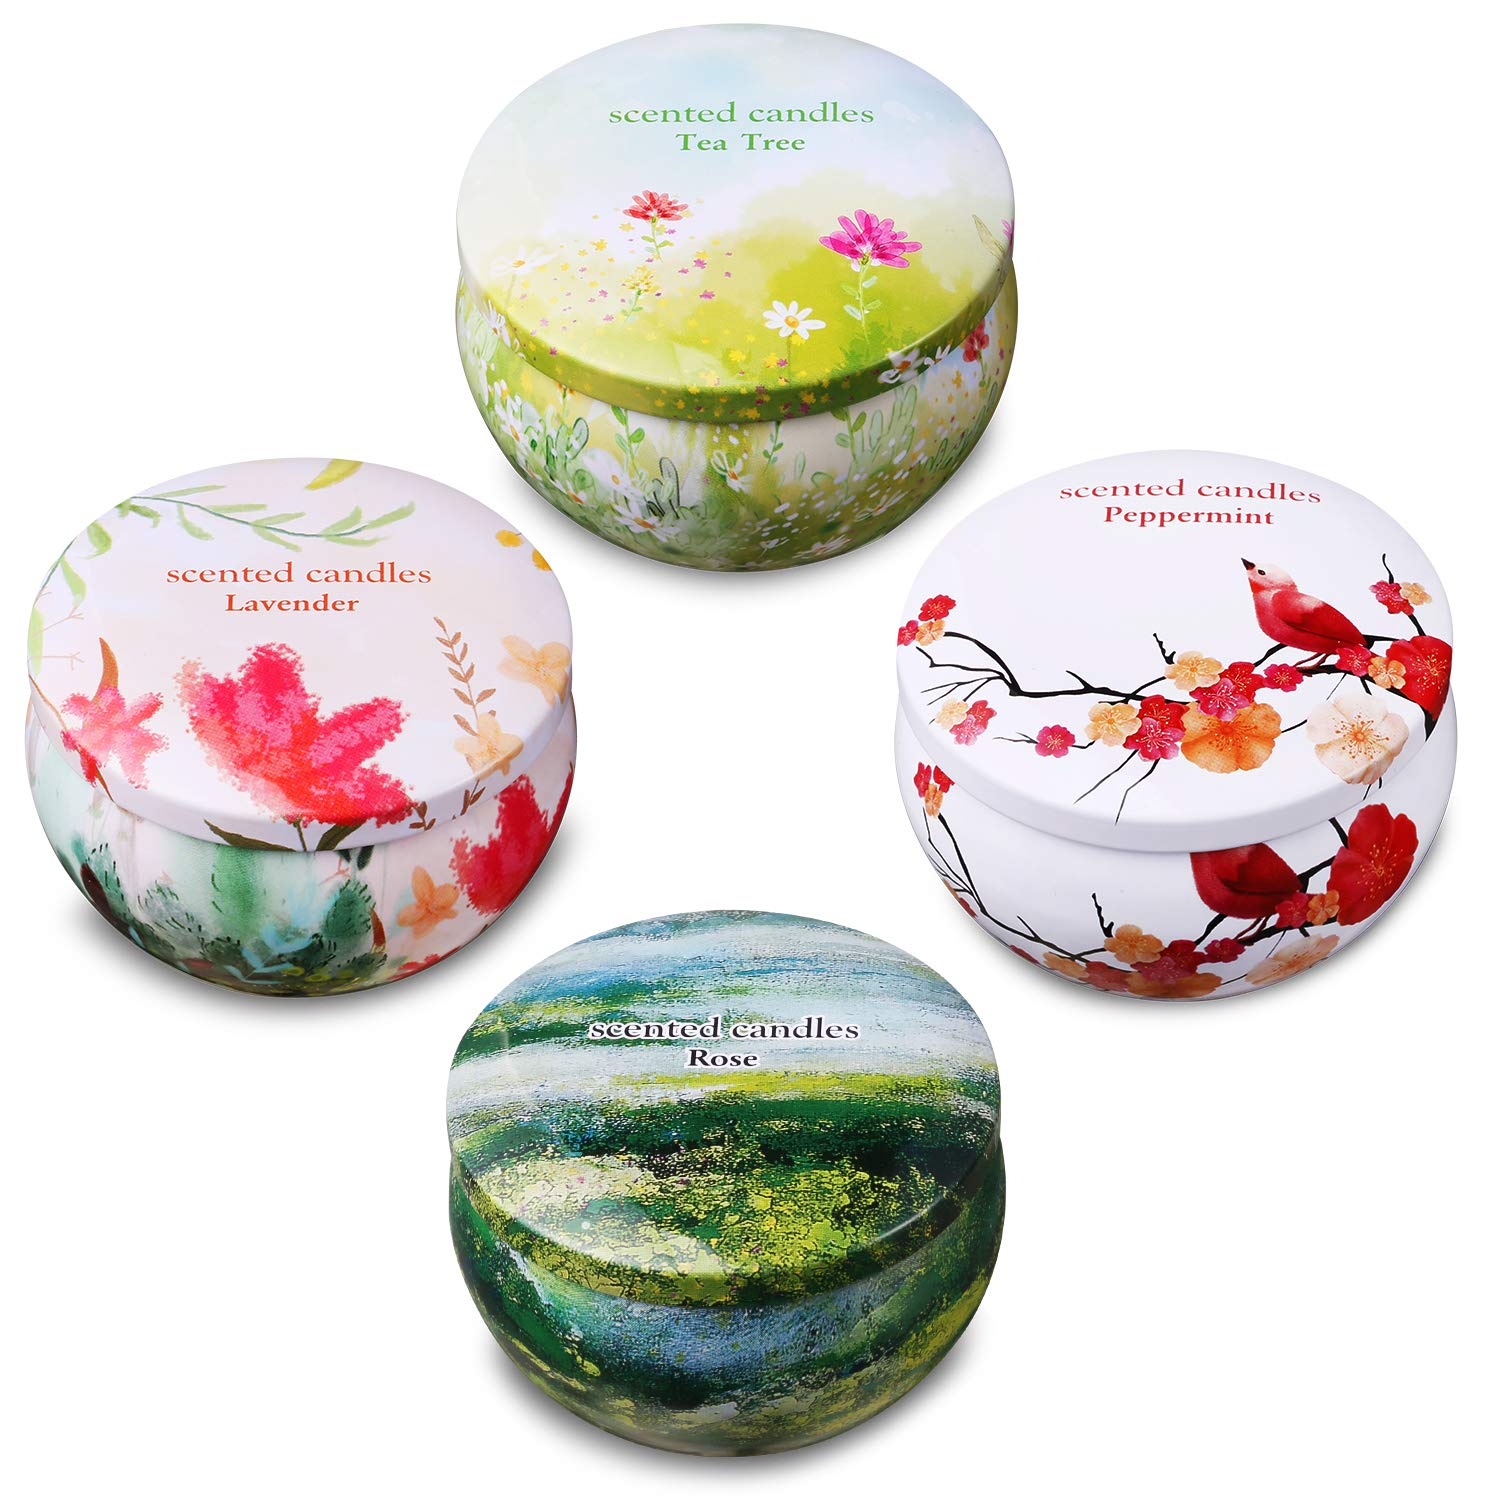 Ahyiyou Scented Candles, Natural Scented Votive Candles Gift Set, 100% Soy Wax Tin Candles for Stress Relief and Aromatherapy Candles - Lavender, Rose, Tea Tree and Peppermint (4 Packs)(2.2 oz)